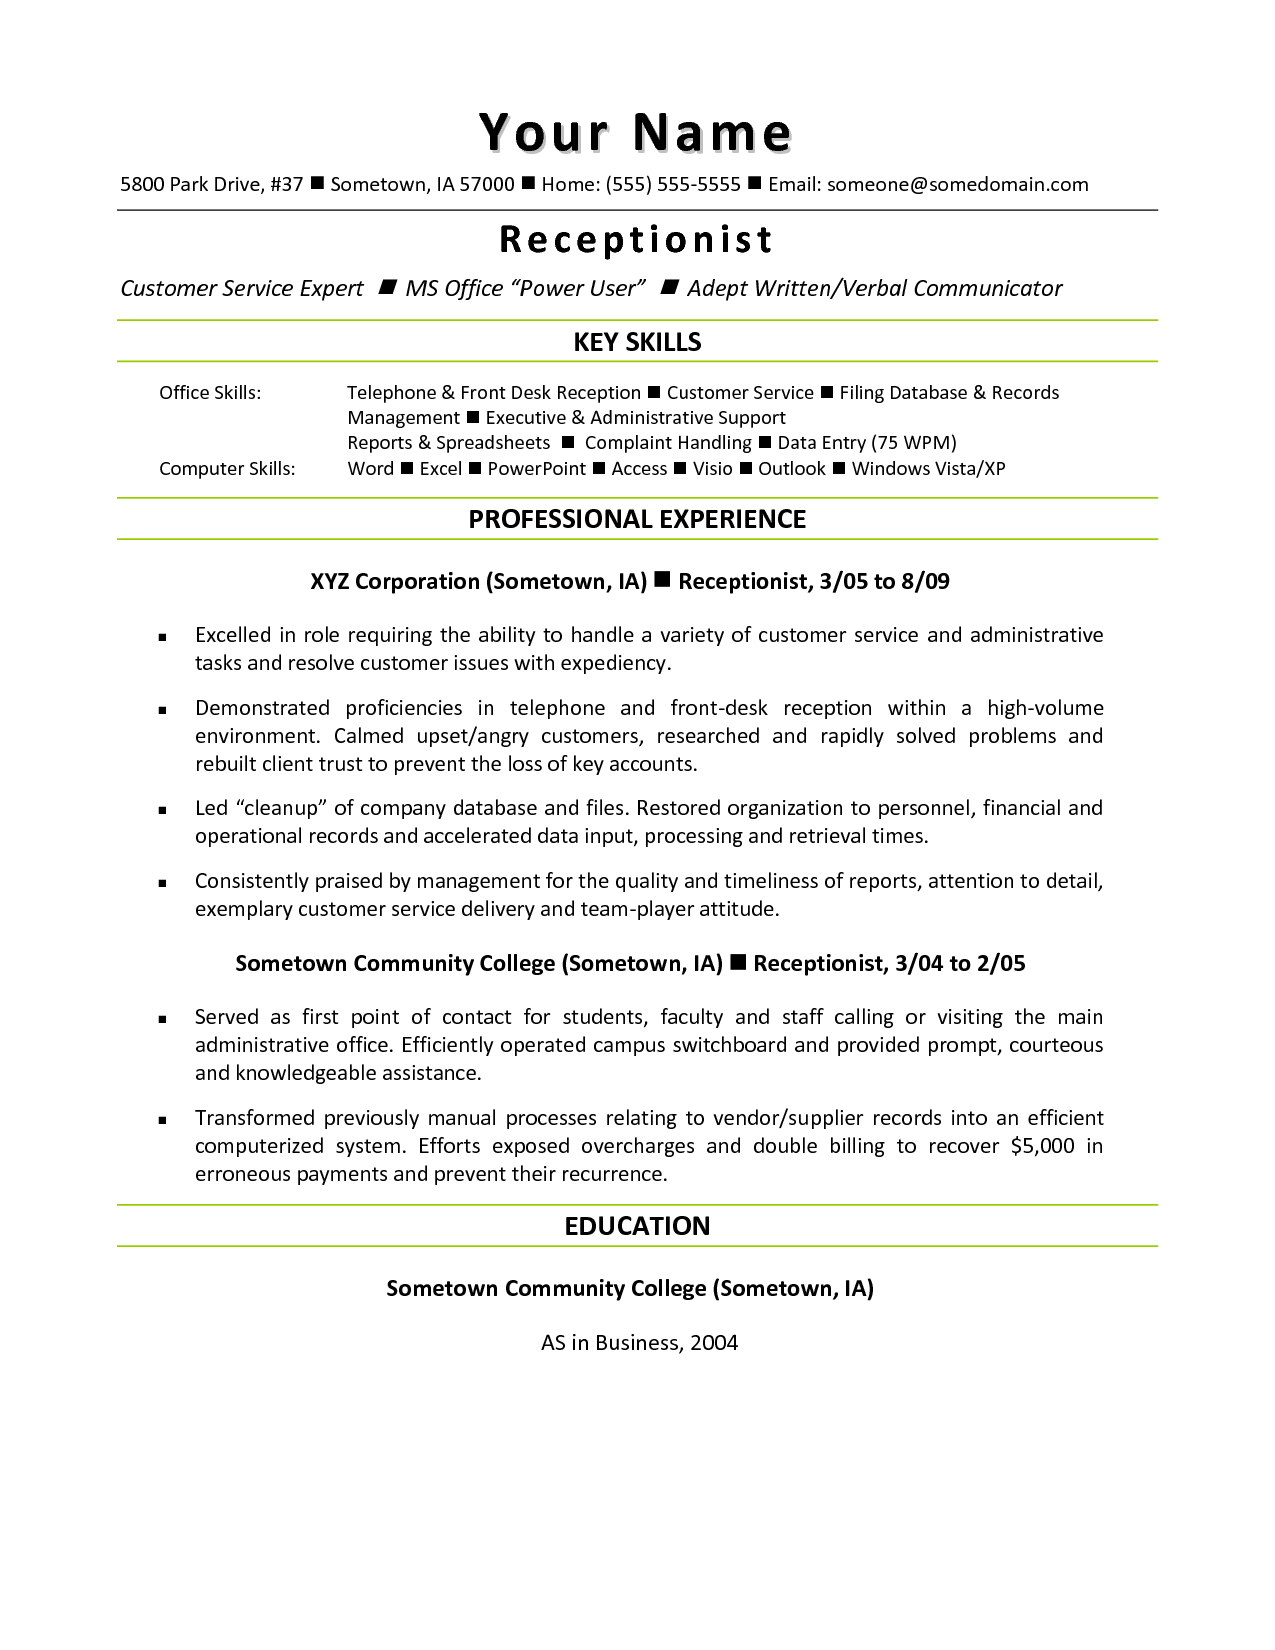 Charming Law Front Office Receptionist Resume Key Skills And Professional Experience  Law Firm Resume  Receptionist Responsibilities Resume